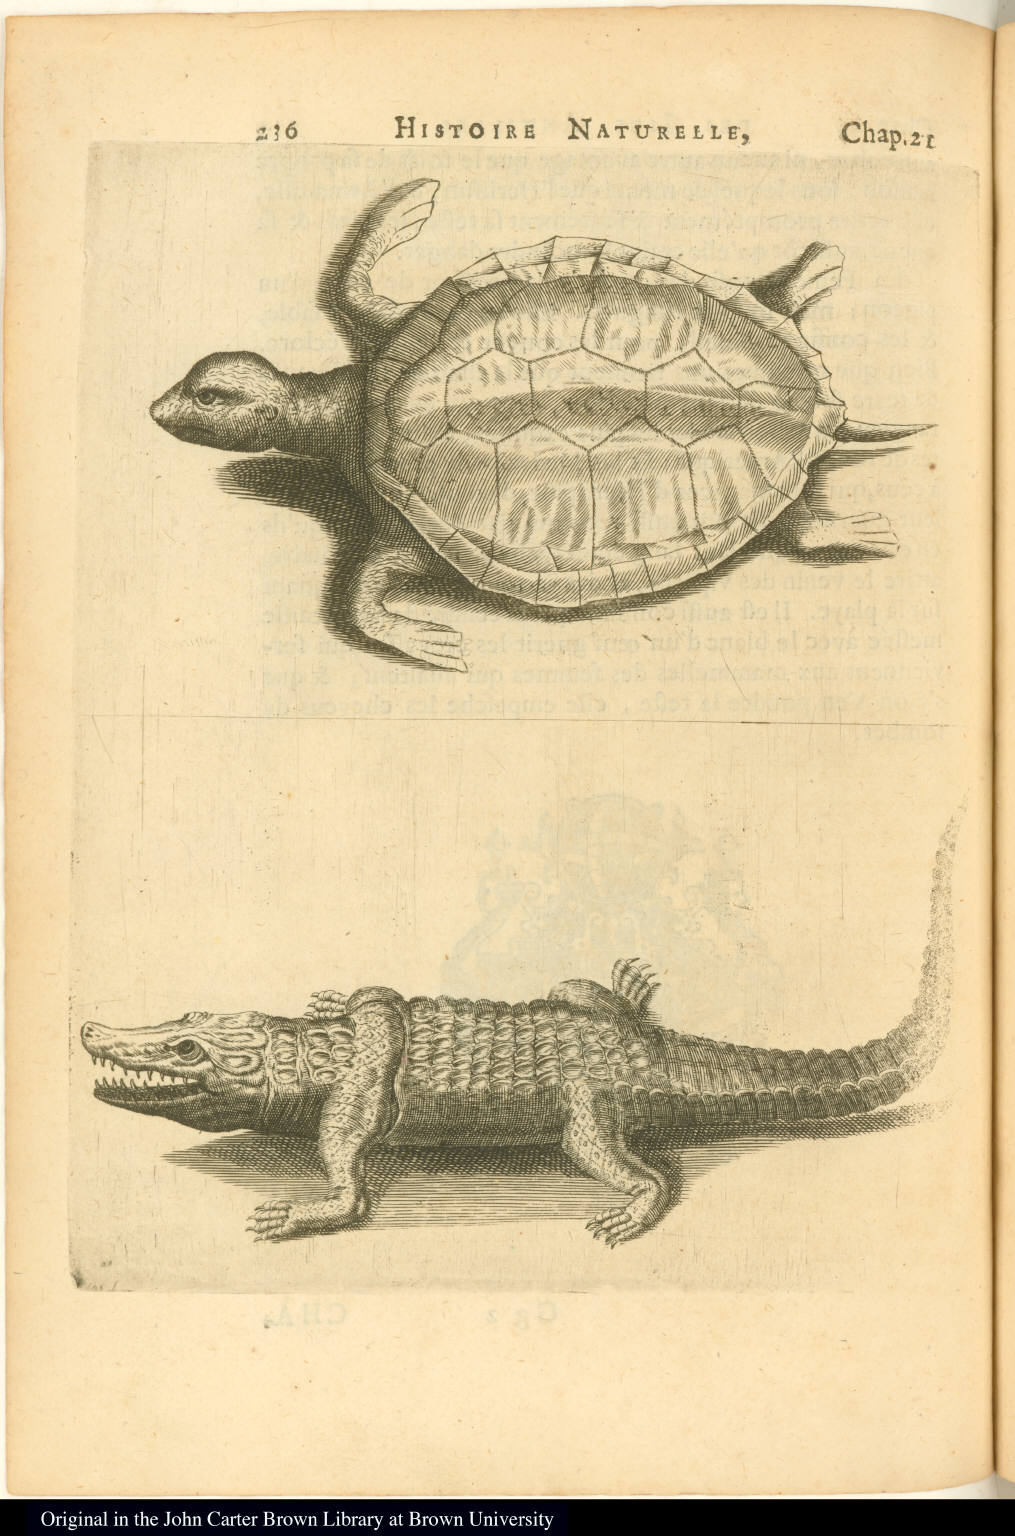 [Tortoise or turtle and caiman]